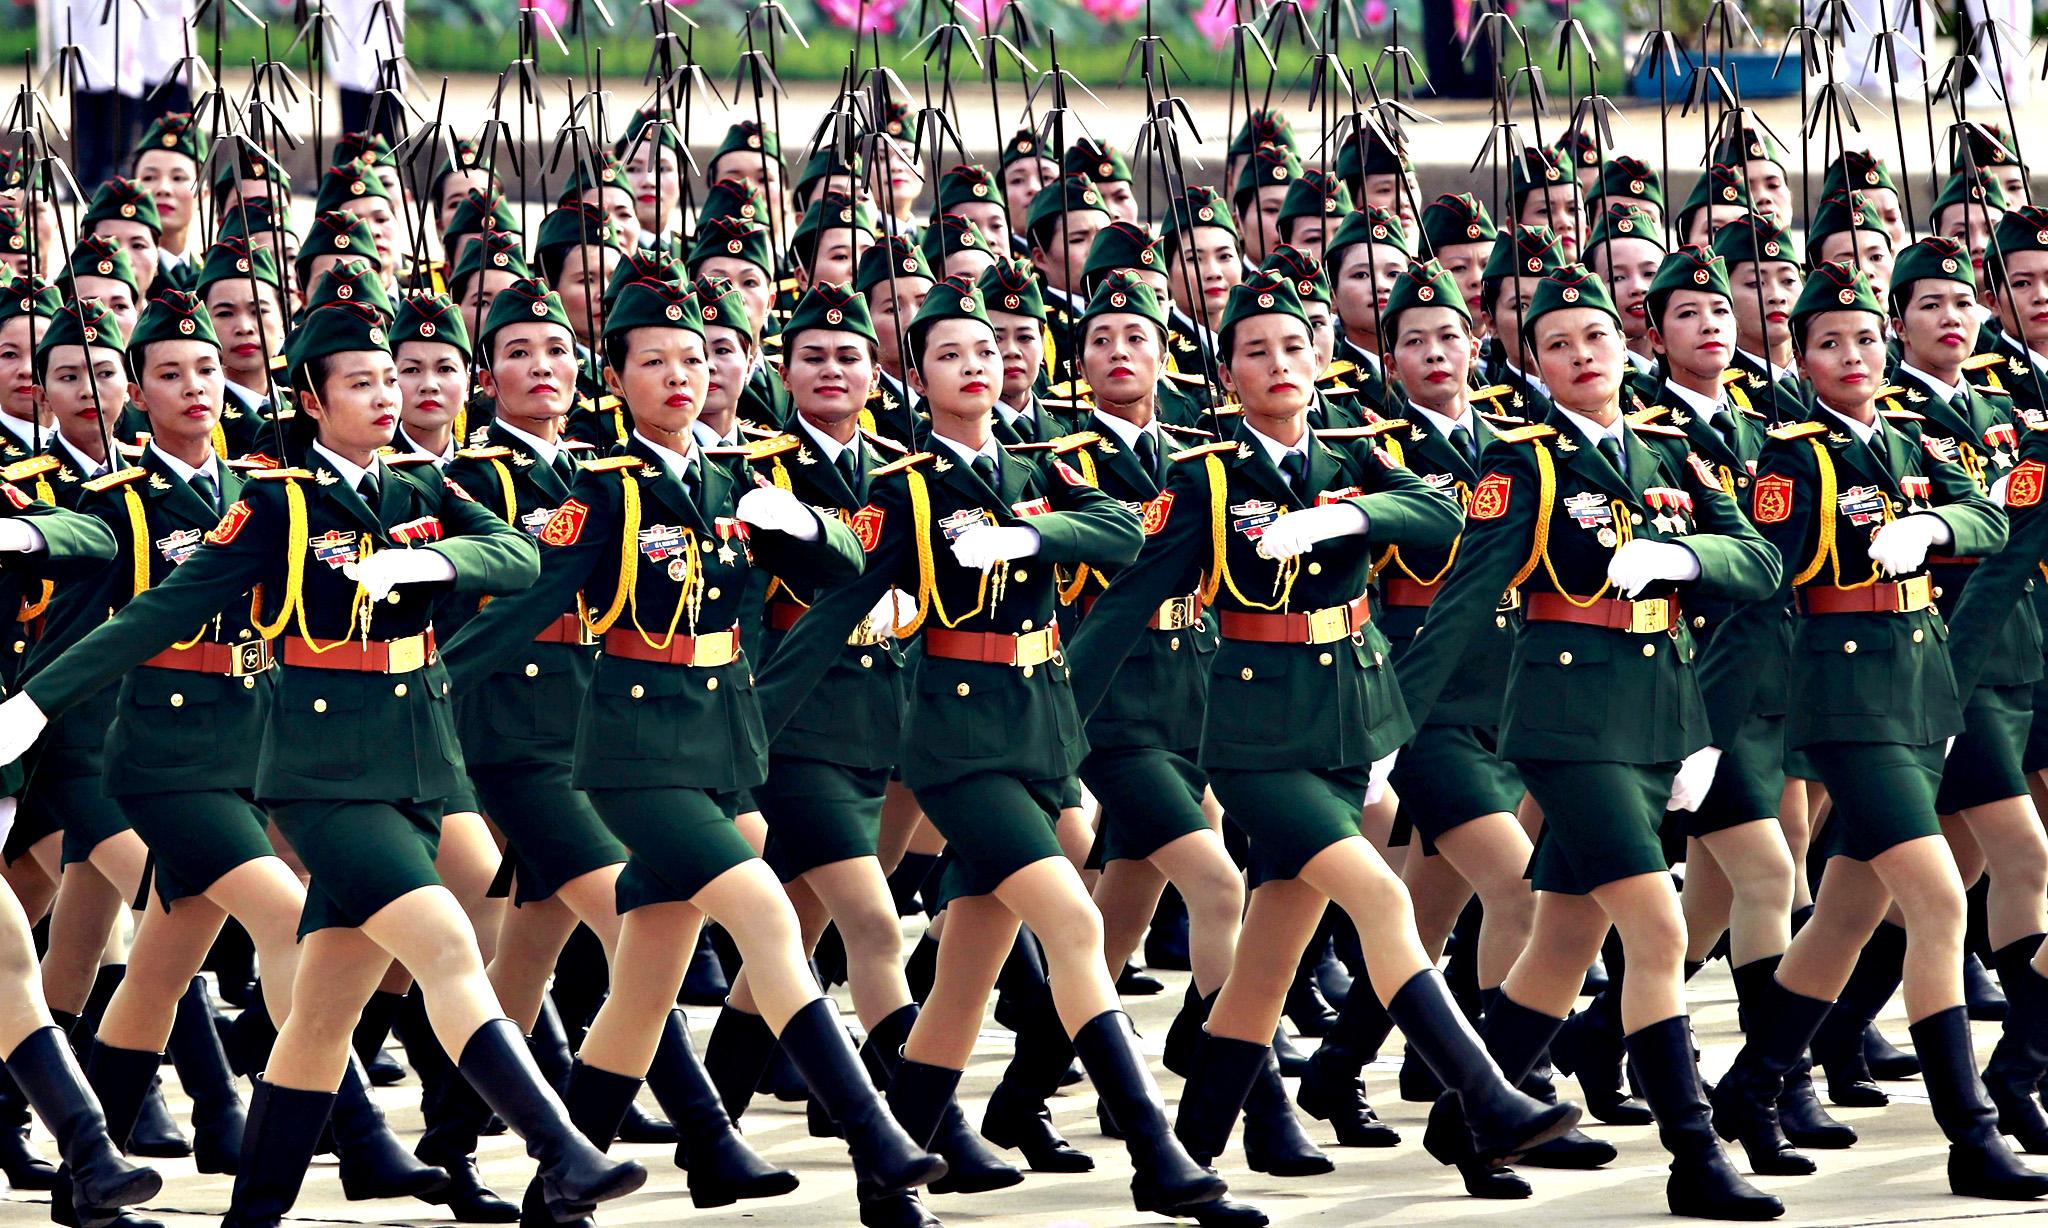 Vietnamese female commissioned officers of the signal force march during a parade marking their 70th National Day at Ba Dinh square in Hanoi, Vietnam...Vietnamese female commissioned officers of the signal force march during a parade marking their 70th National Day at Ba Dinh square in Hanoi, Vietnam September 2, 2015